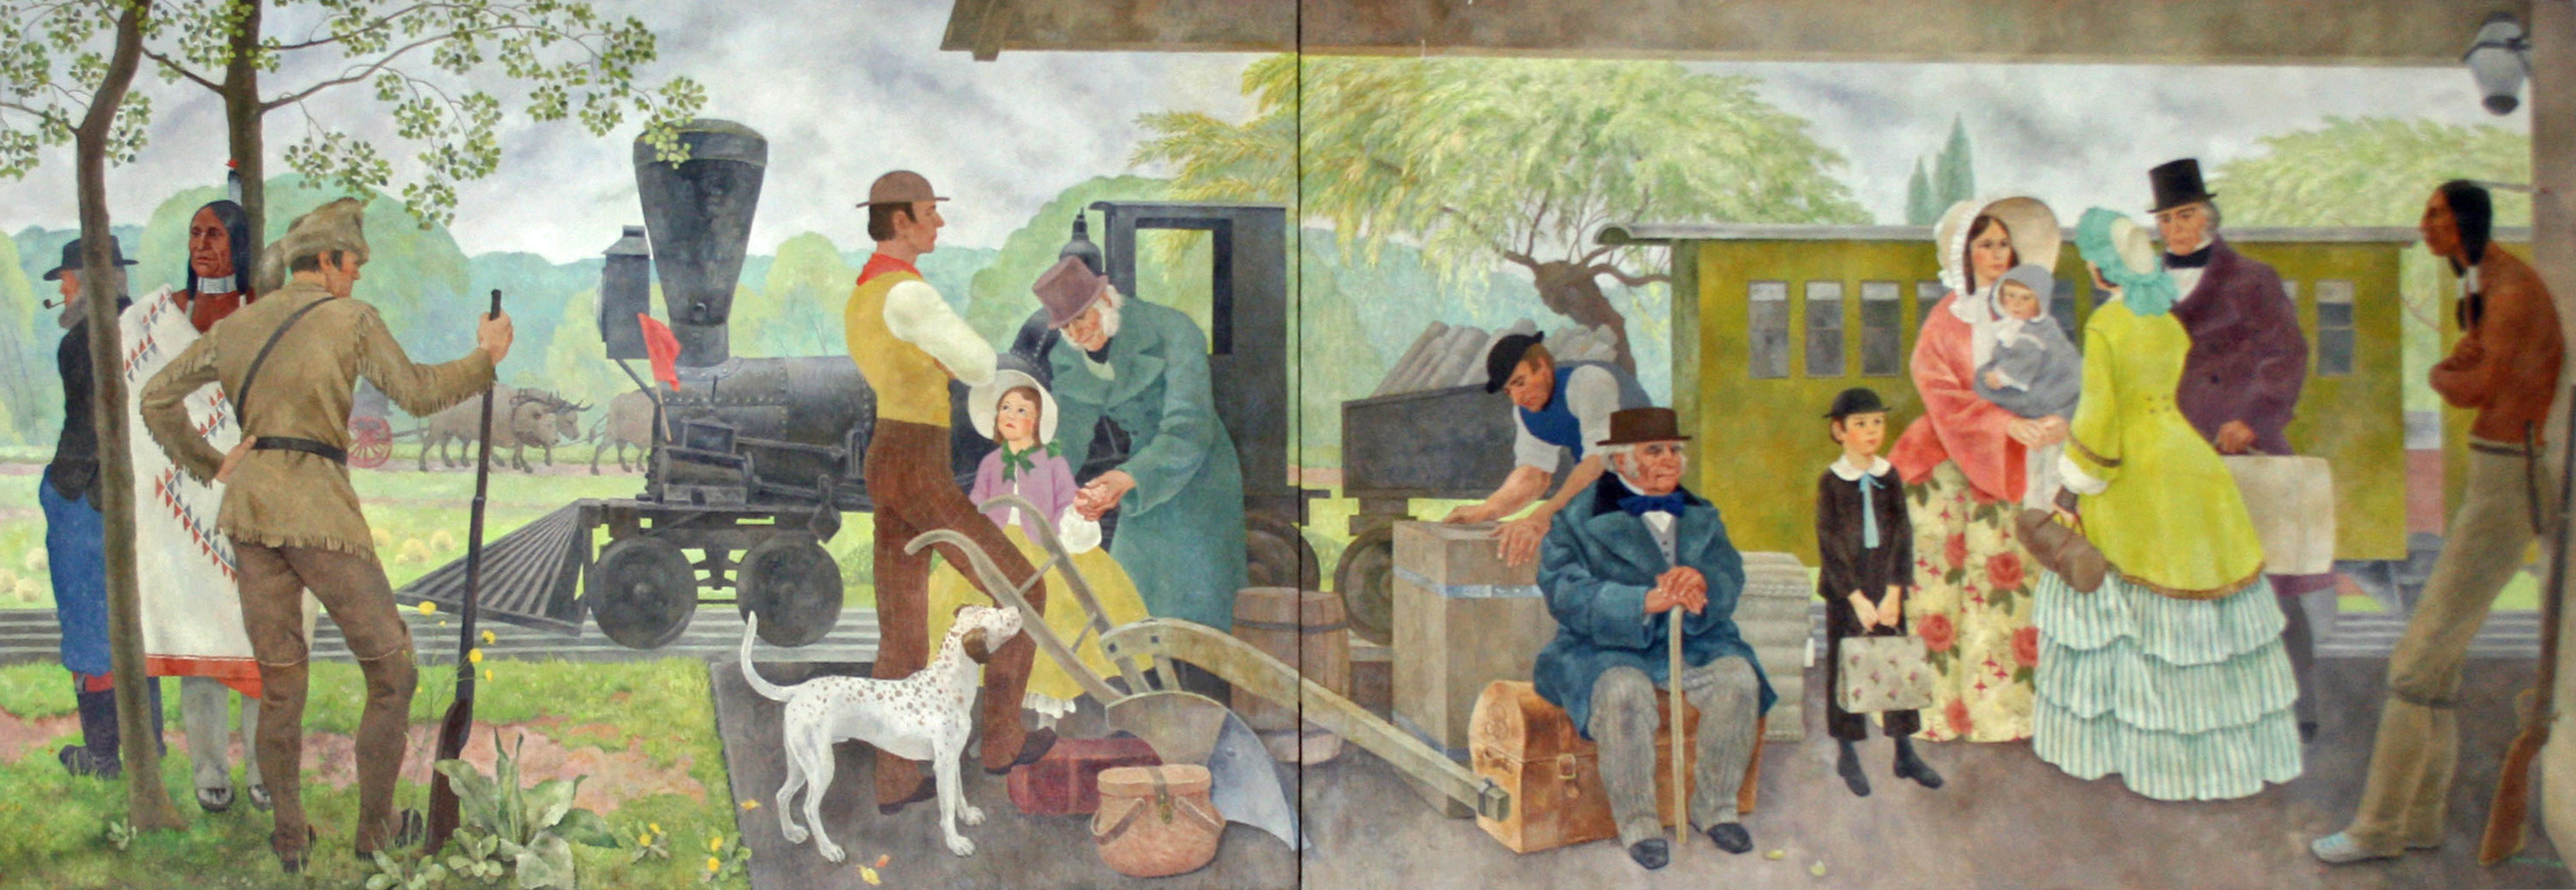 Frances Foy mural, Chicago Main Post Office